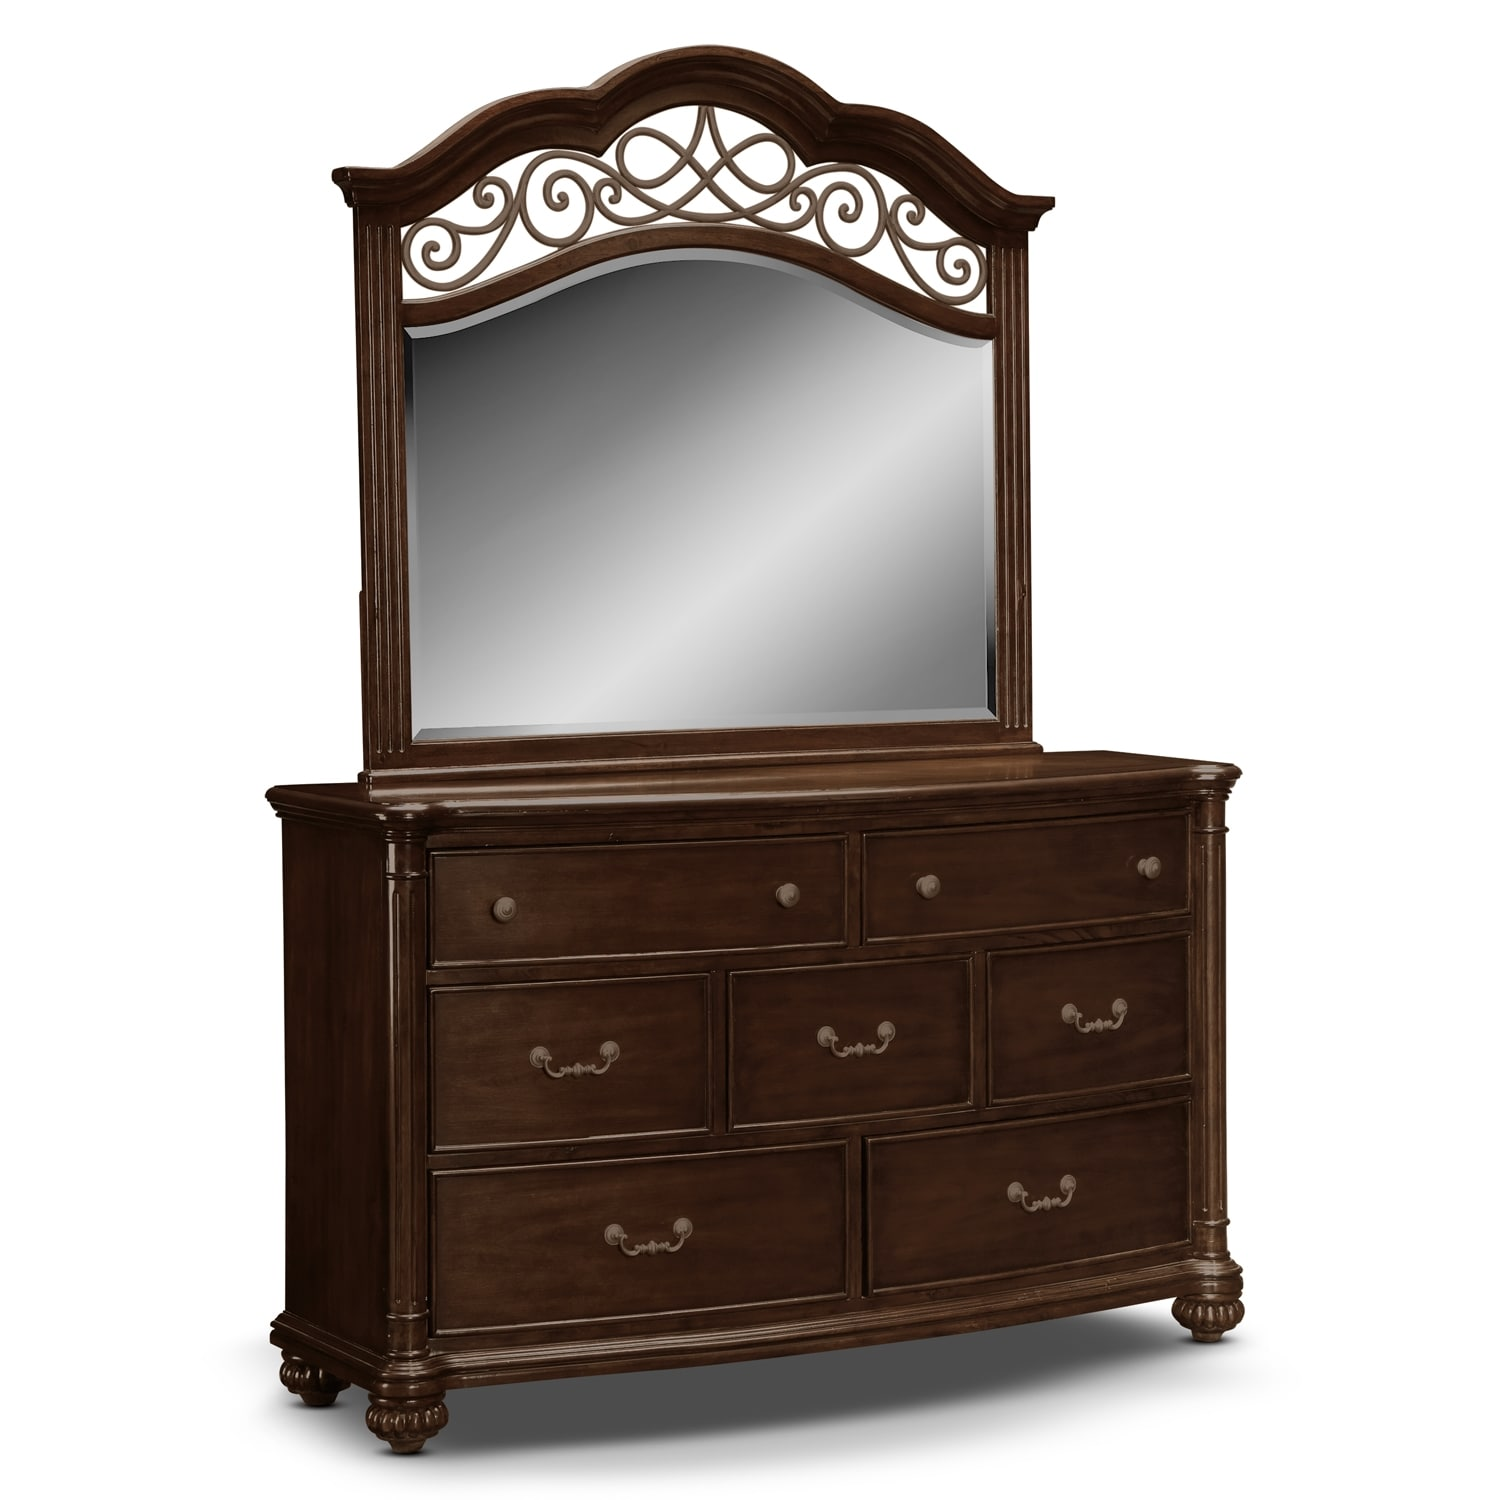 Bedroom Furniture - Derbyshire Dresser & Mirror